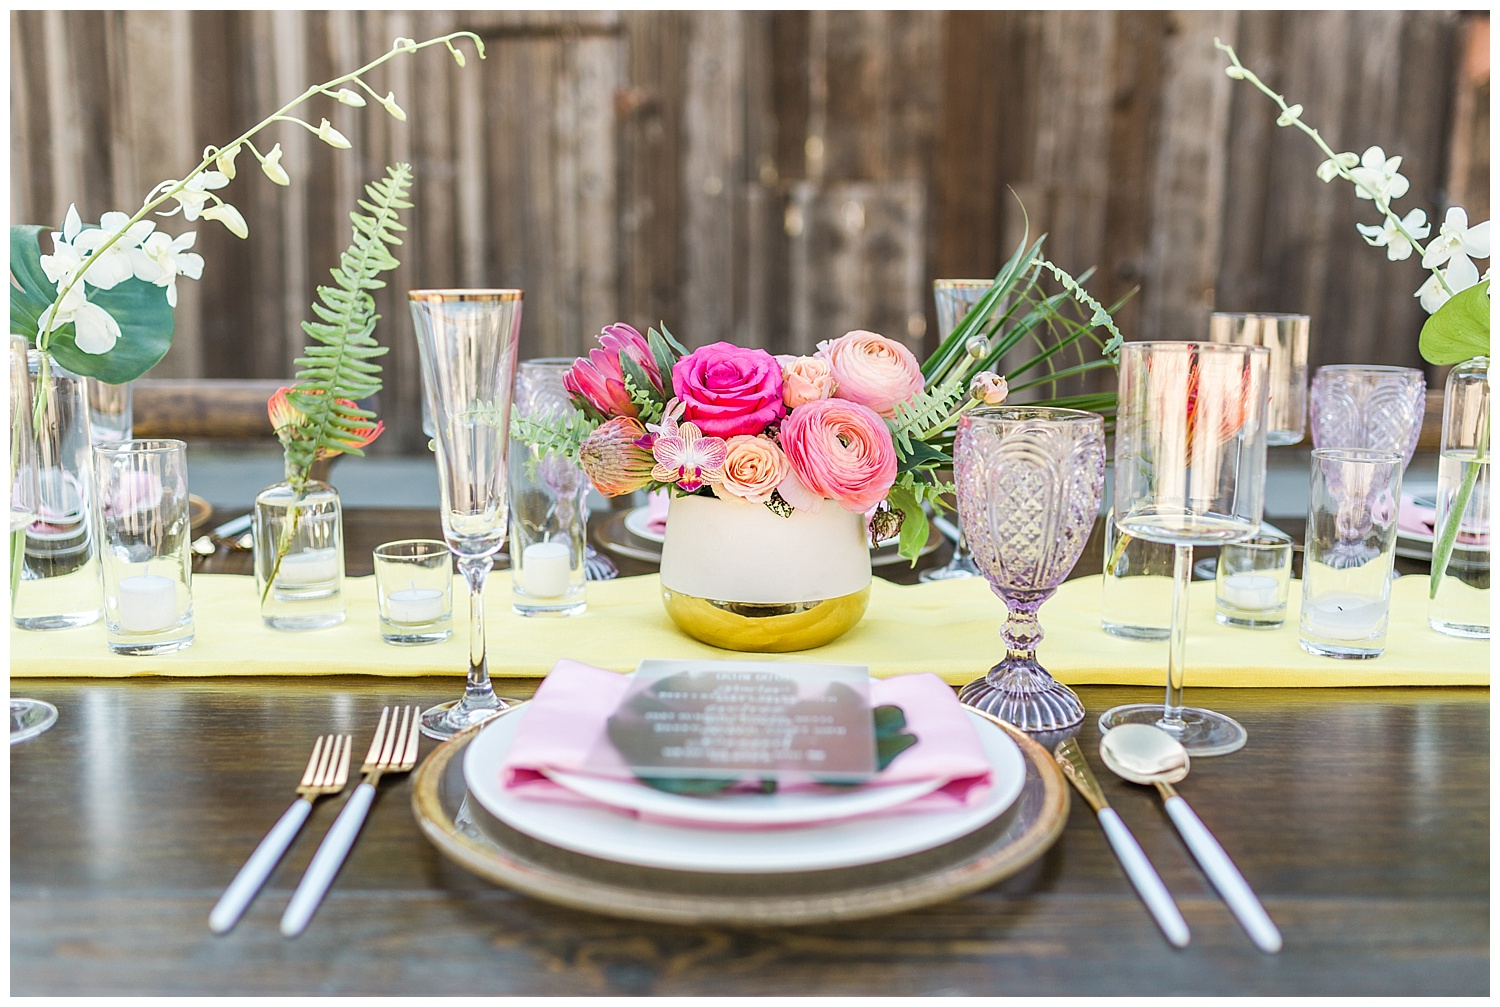 Tropical-table-design-flourish-florals-all-about-events.jpg